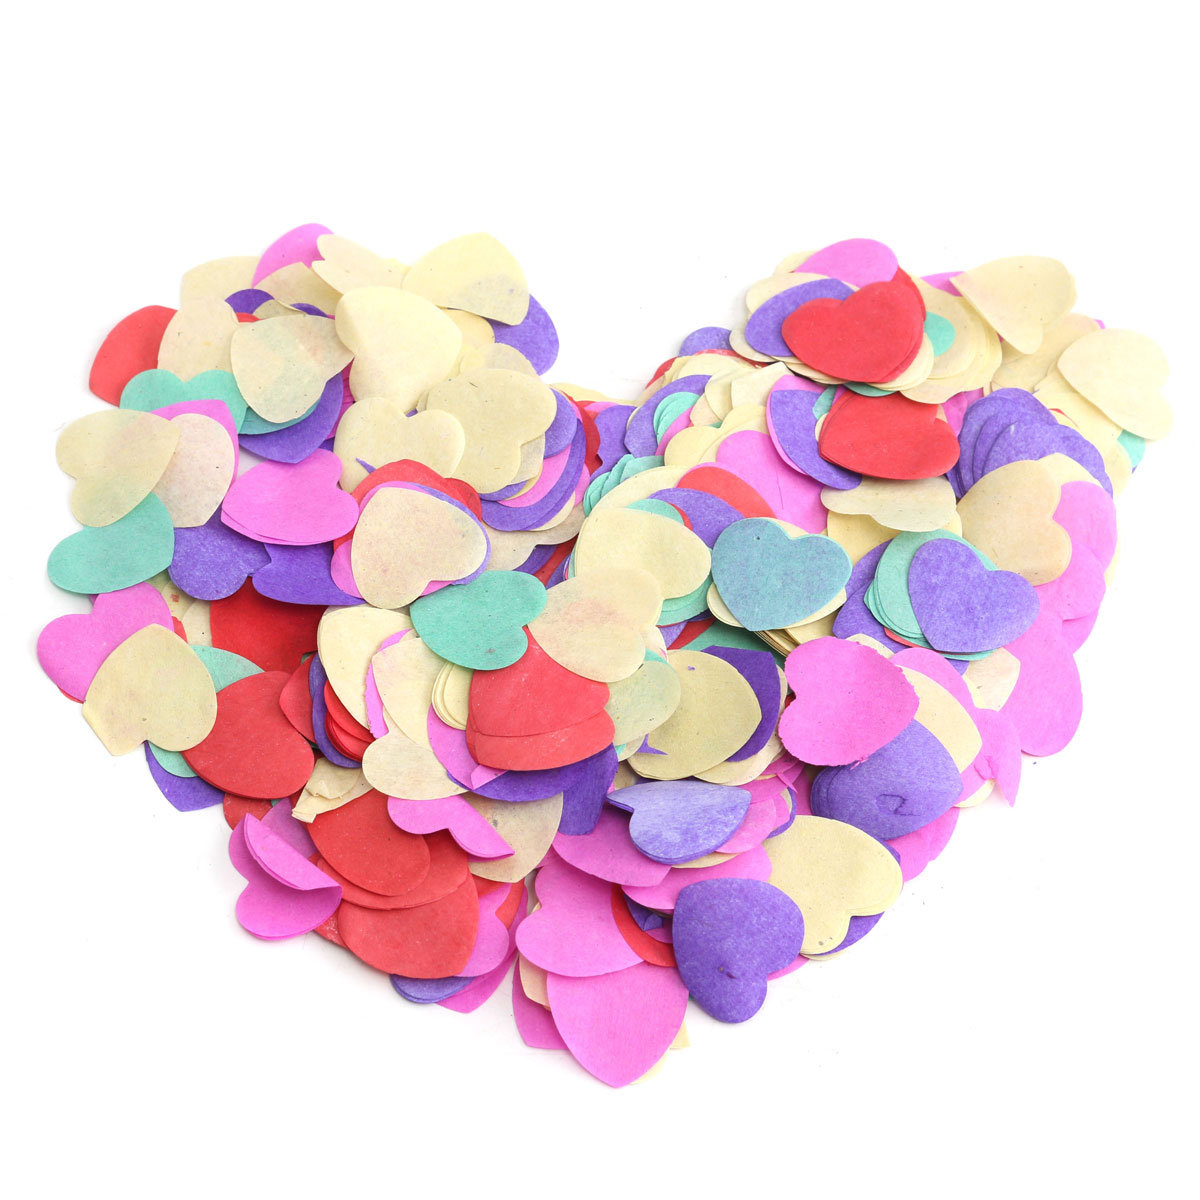 15g/1 Bag Multilcolor Love Heart Shape Paper Birthday Wedding Party Table Decoration